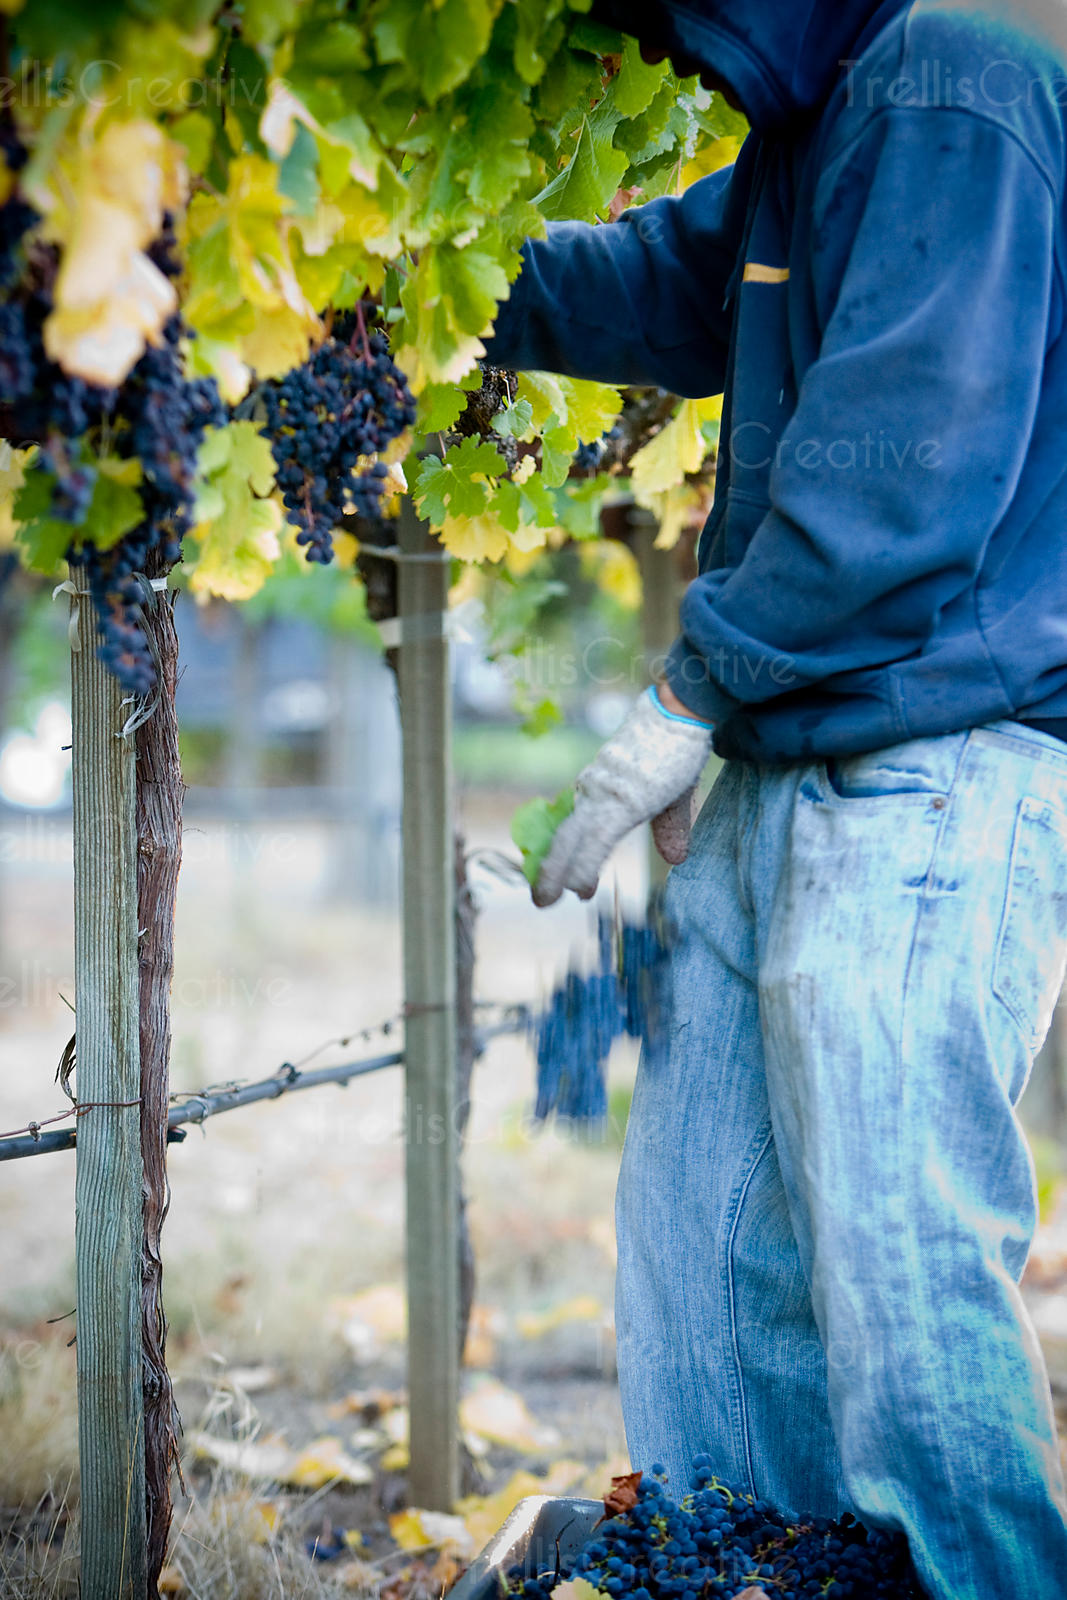 Harvesting wine grapes